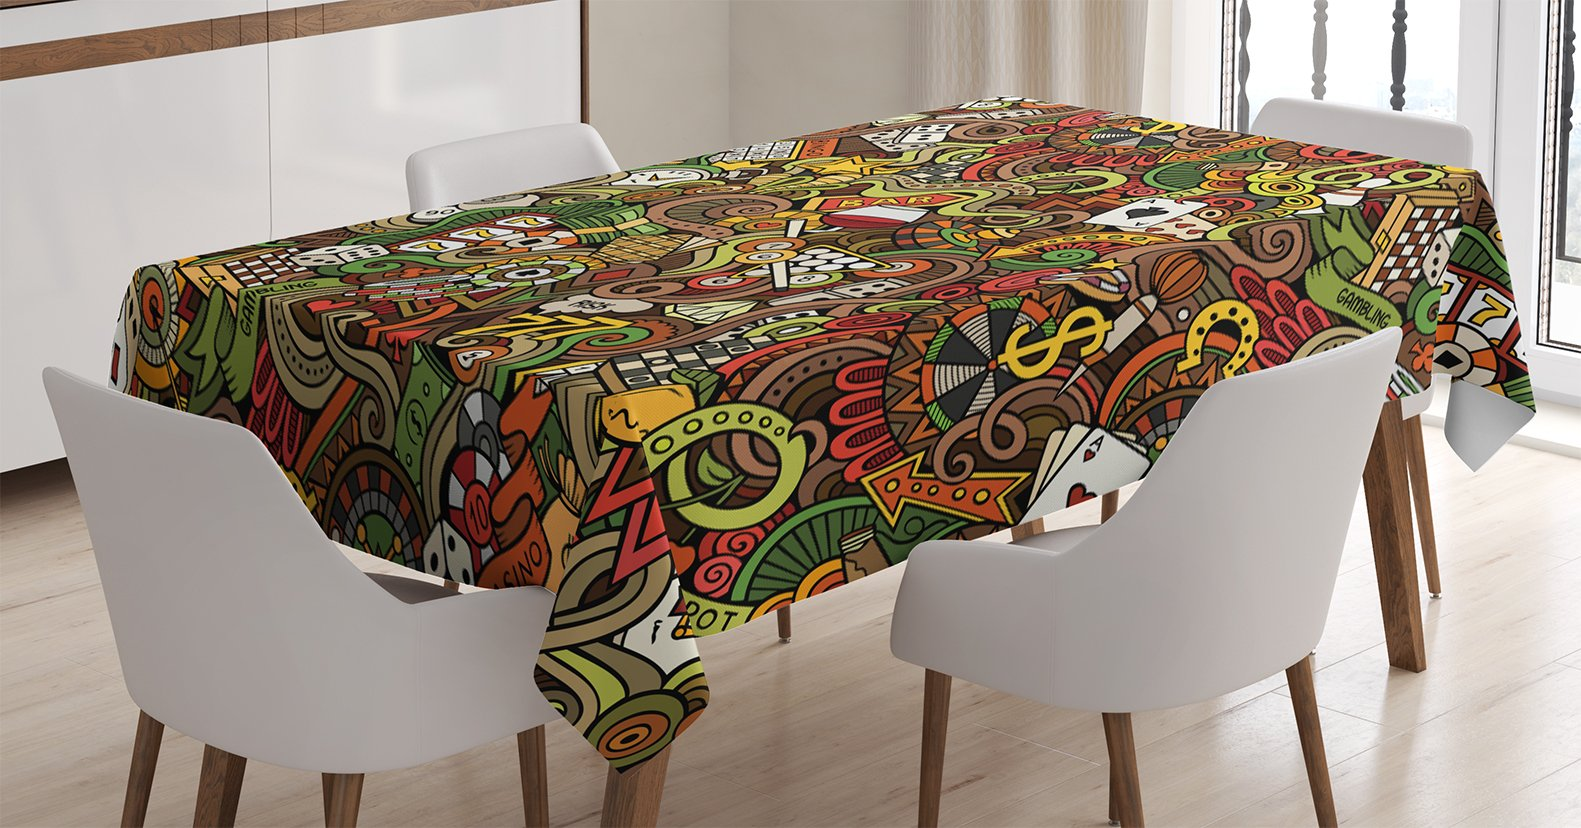 Ambesonne Casino Decorations Tablecloth, Doodles Style Art Bingo Excitement Checkers King Tambourine Vegas, Dining Room Kitchen Rectangular Table Cover, 60 X 84 inches by Ambesonne